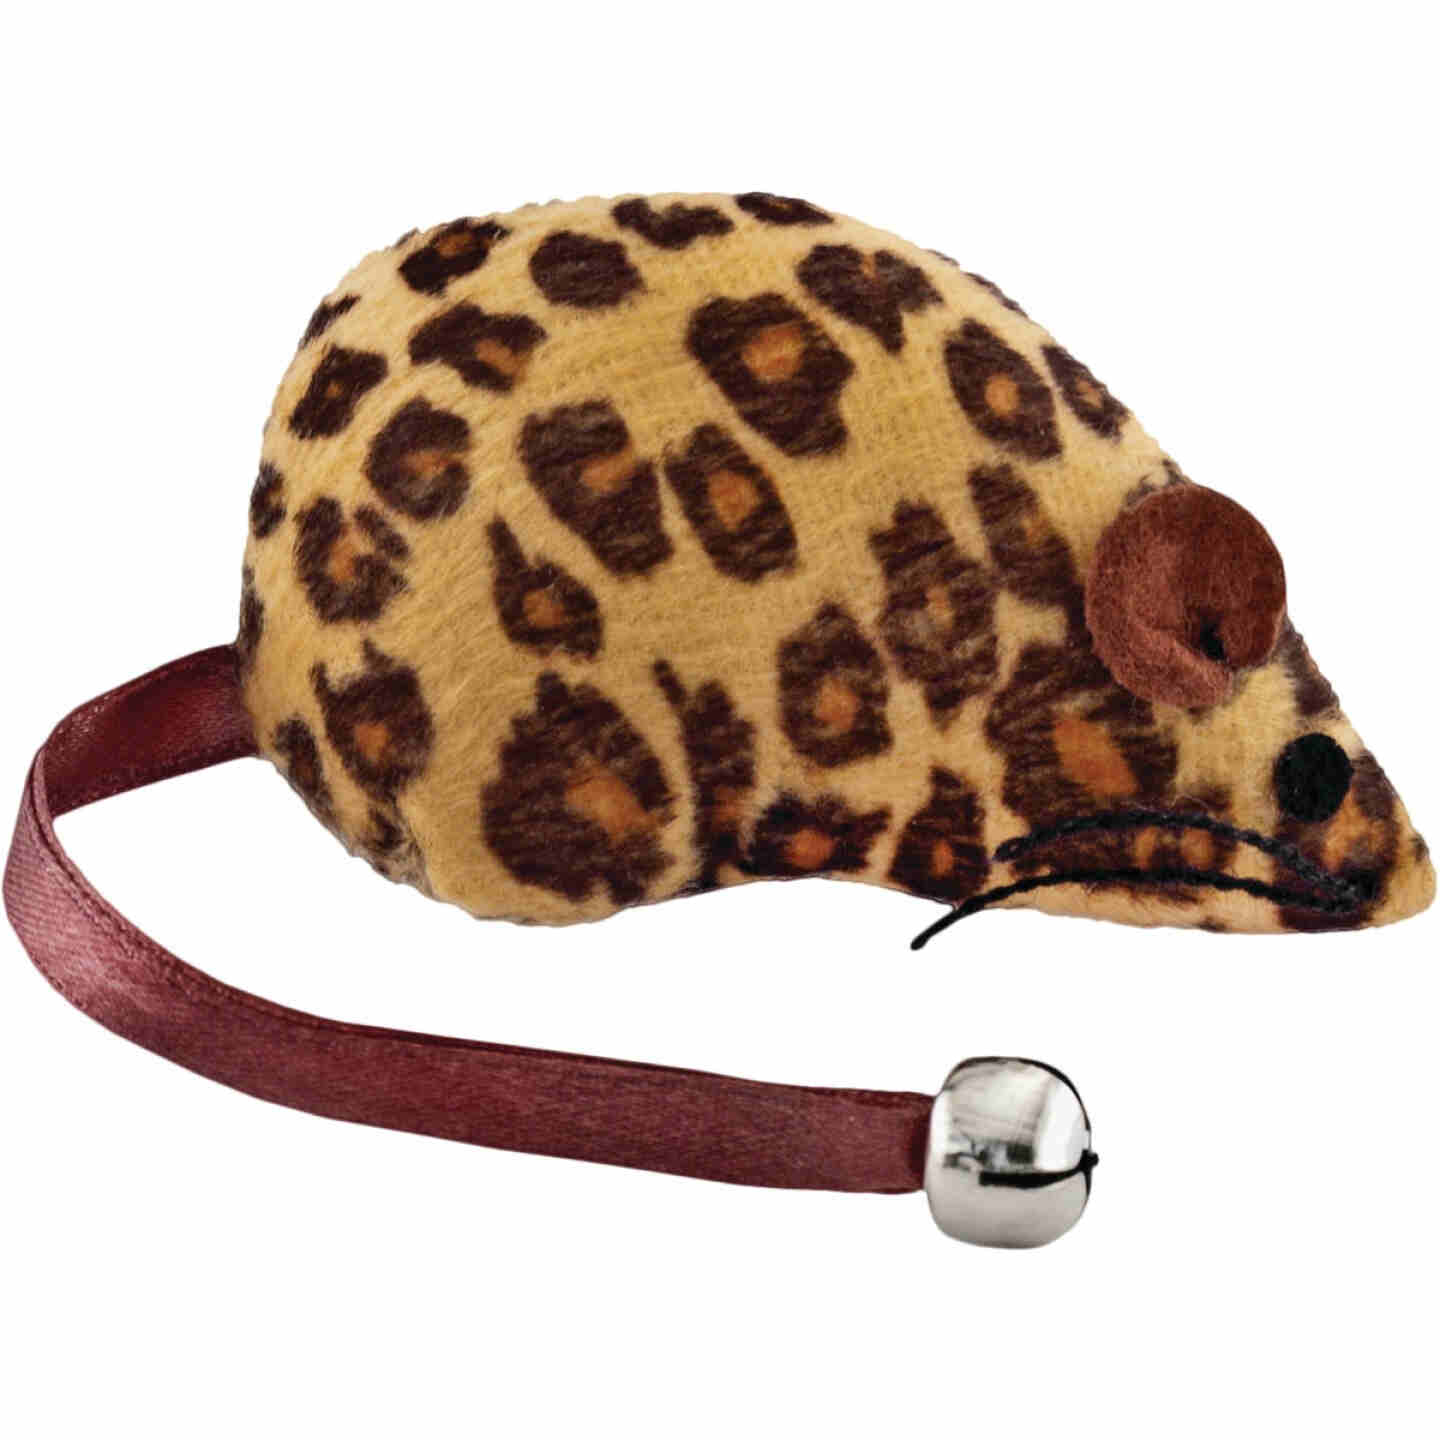 Westminster Pet Ruffin' it Plush Mouse Cat Toy Image 1